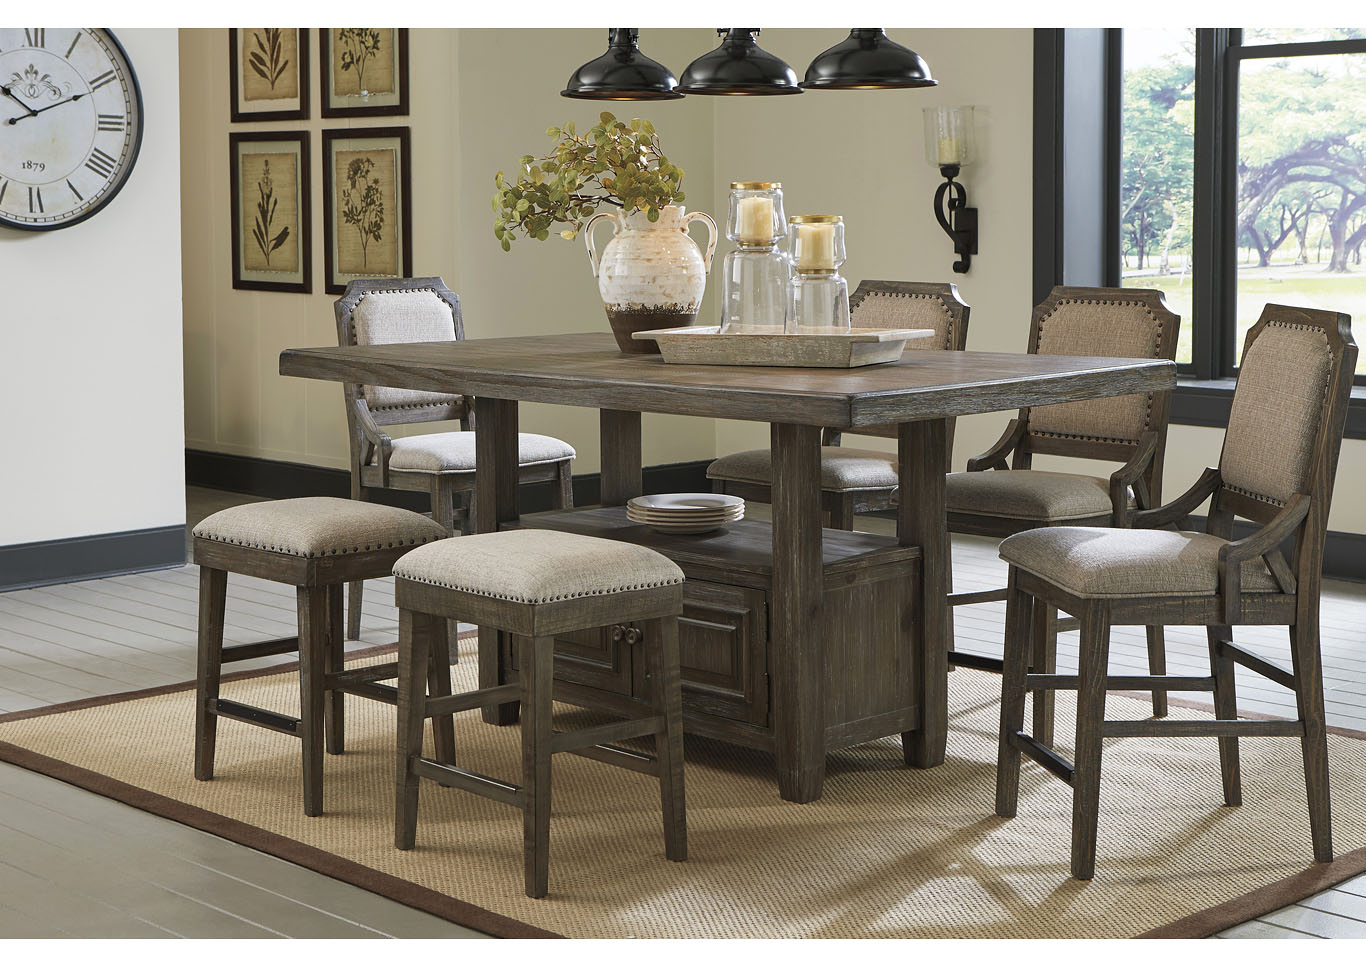 Wyndahl Brown Counter Dining Table w/4 Counter Chair & 2 Bar Stool,Signature Design By Ashley